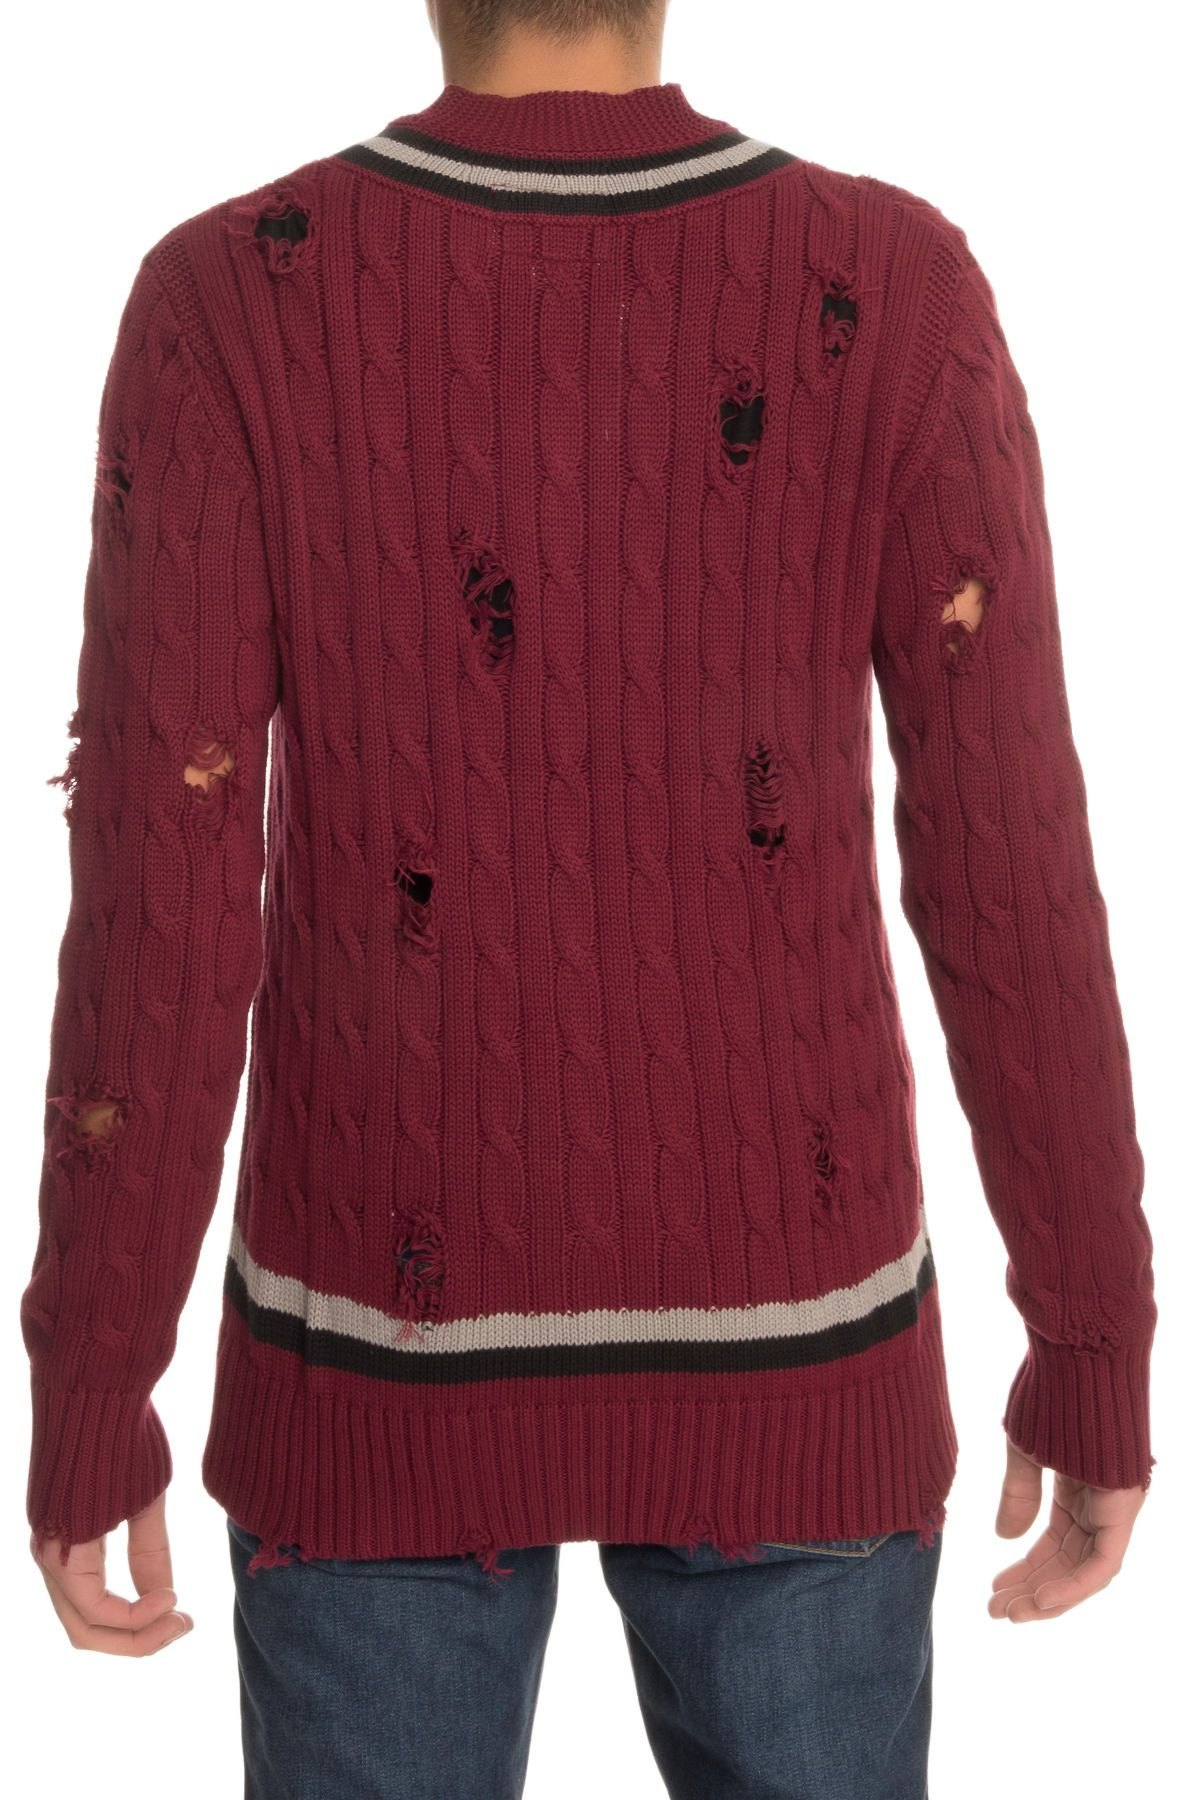 Distressed Cable Knit Sweater in Burgundy